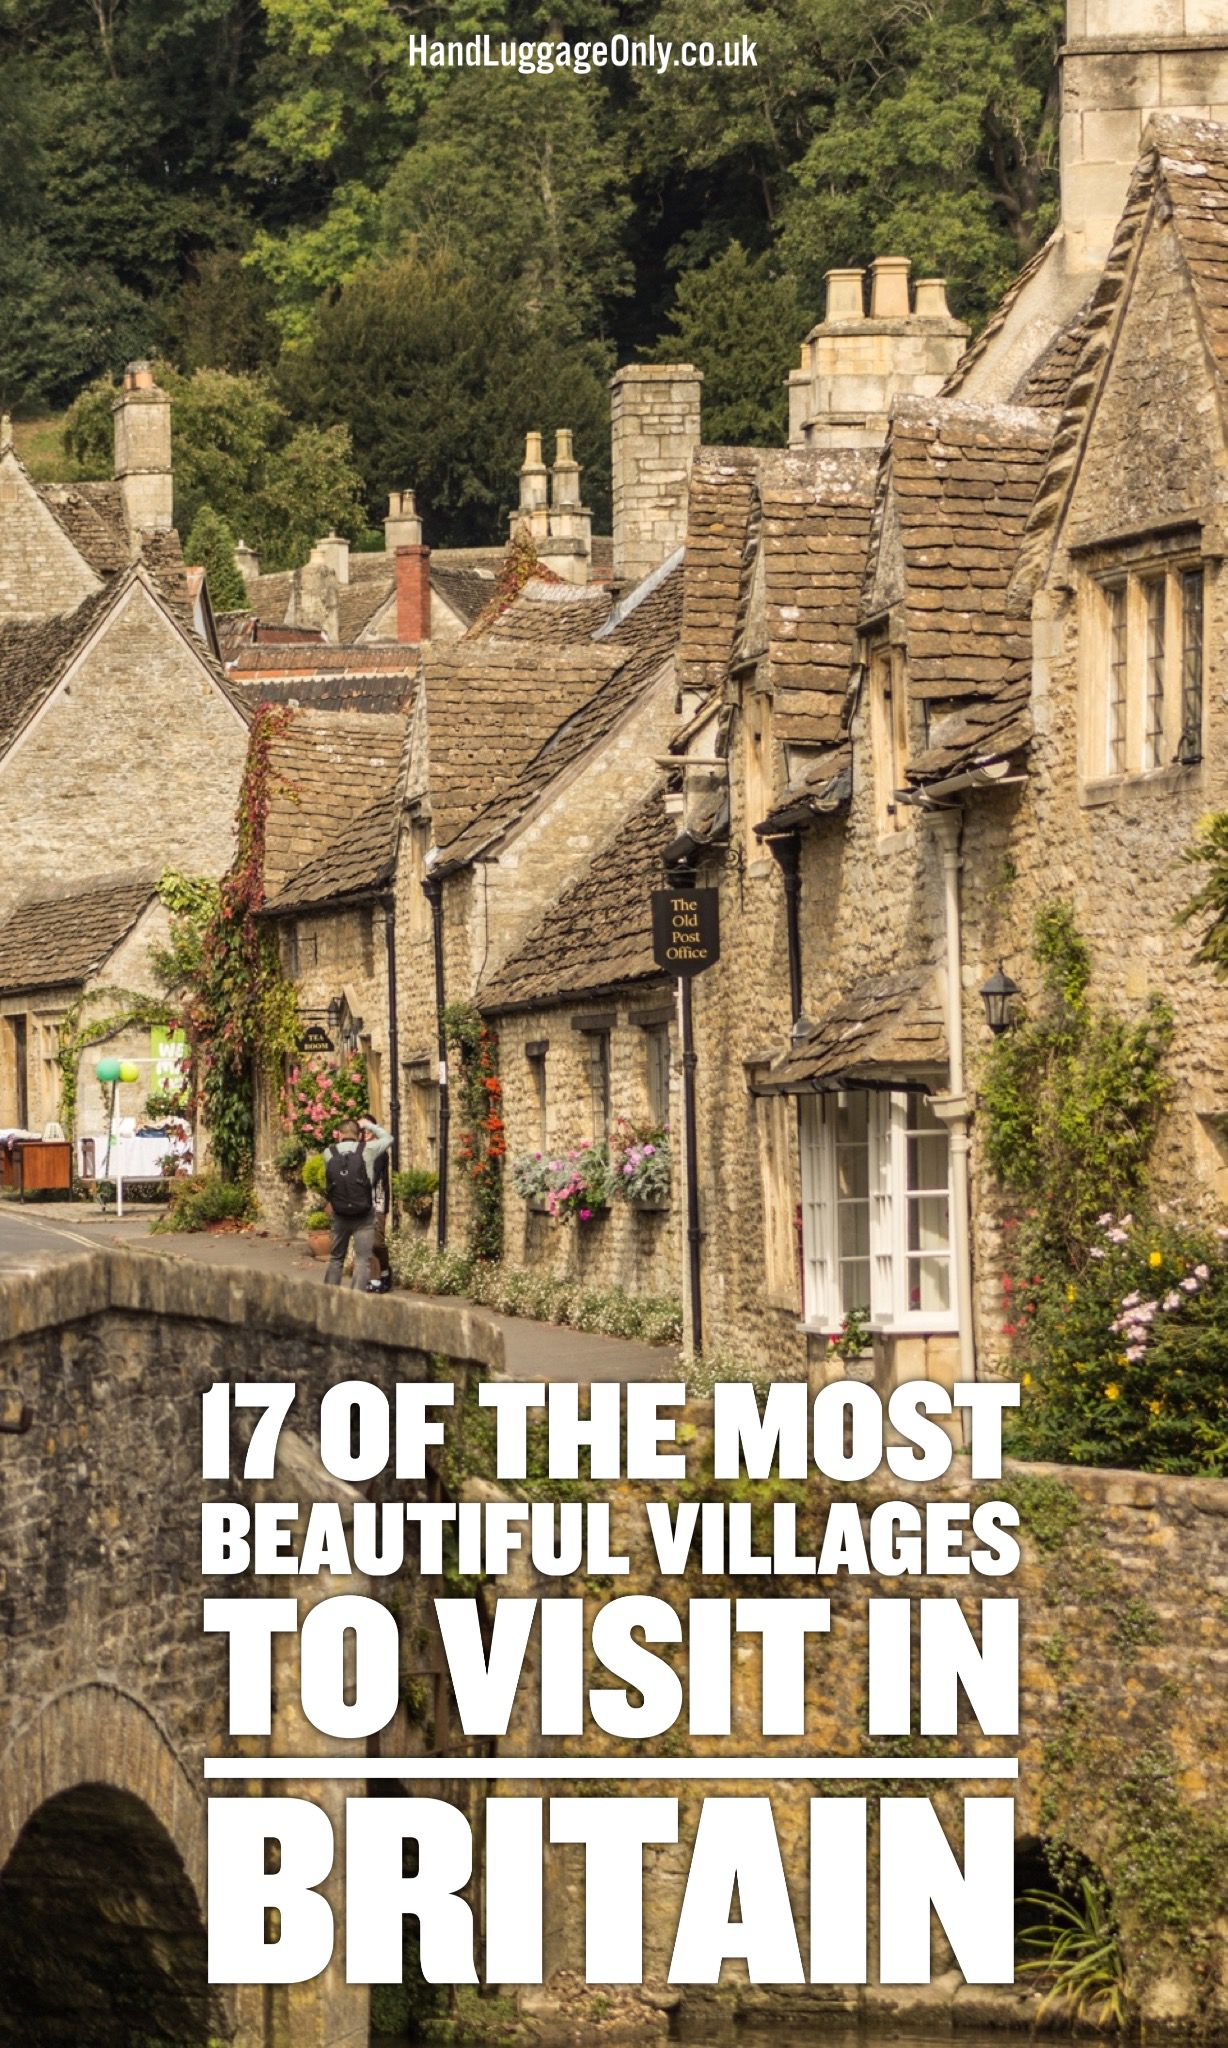 Beautiful Villages To Visit In Britain (17)